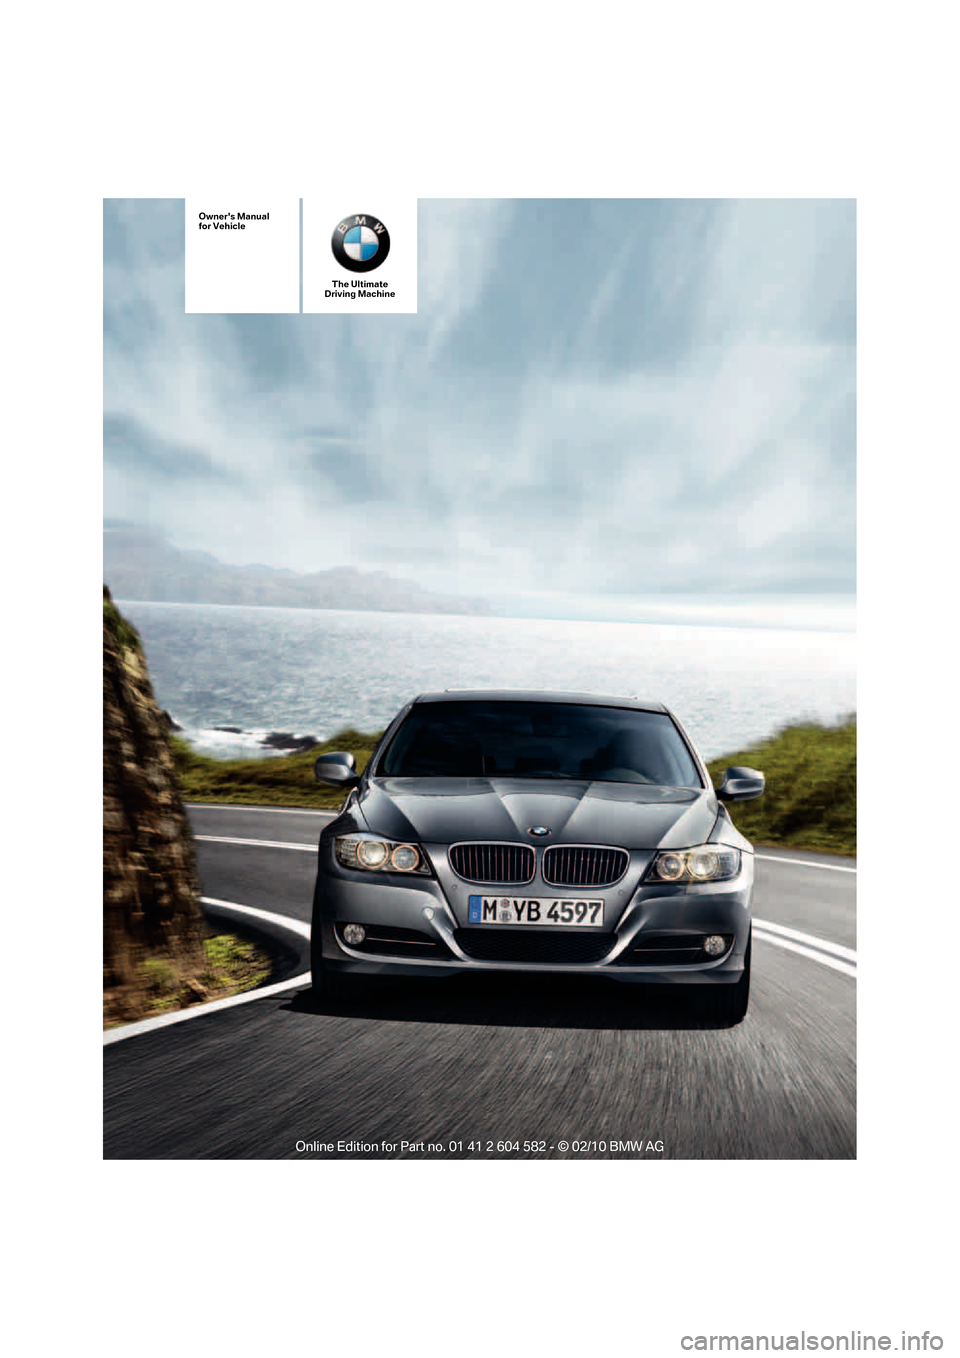 BMW 323I 2011 E90 Owner's Manual (286 Pages)